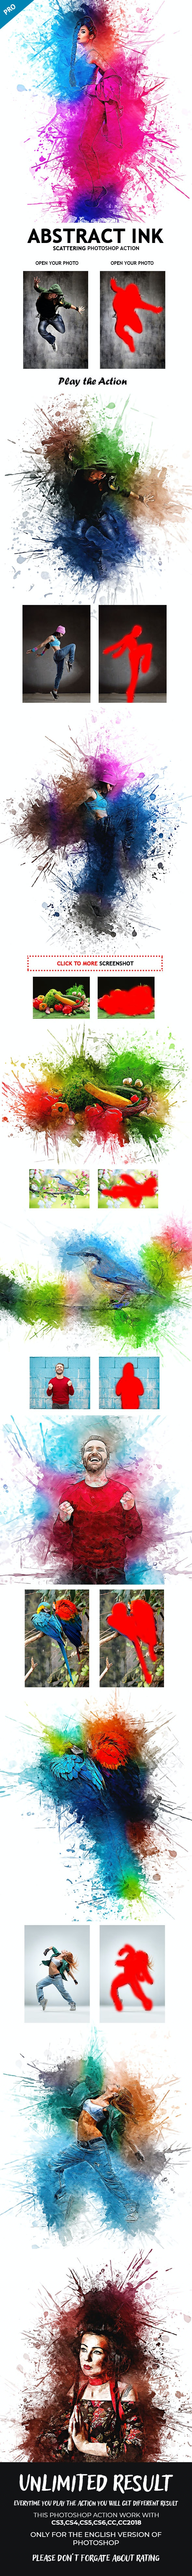 Abstract Ink Scattering Photoshop Action - Photo Effects Actions